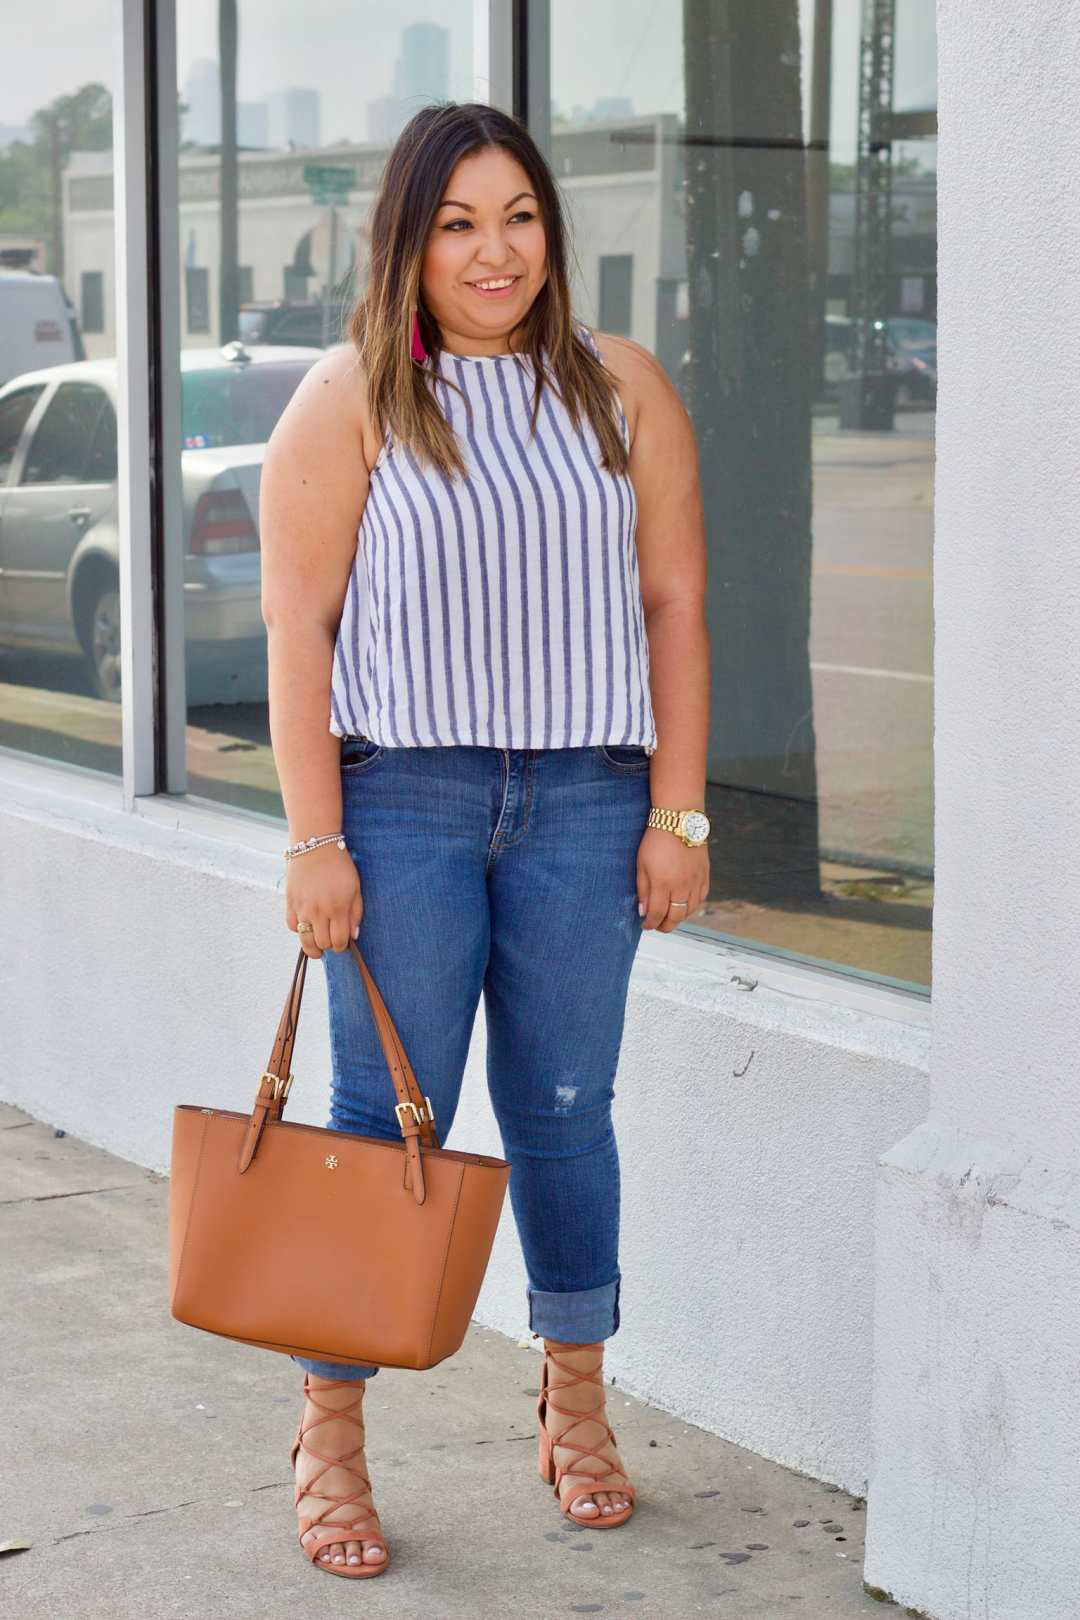 cute summer outfit, basic striped top outfit, how to style striped top